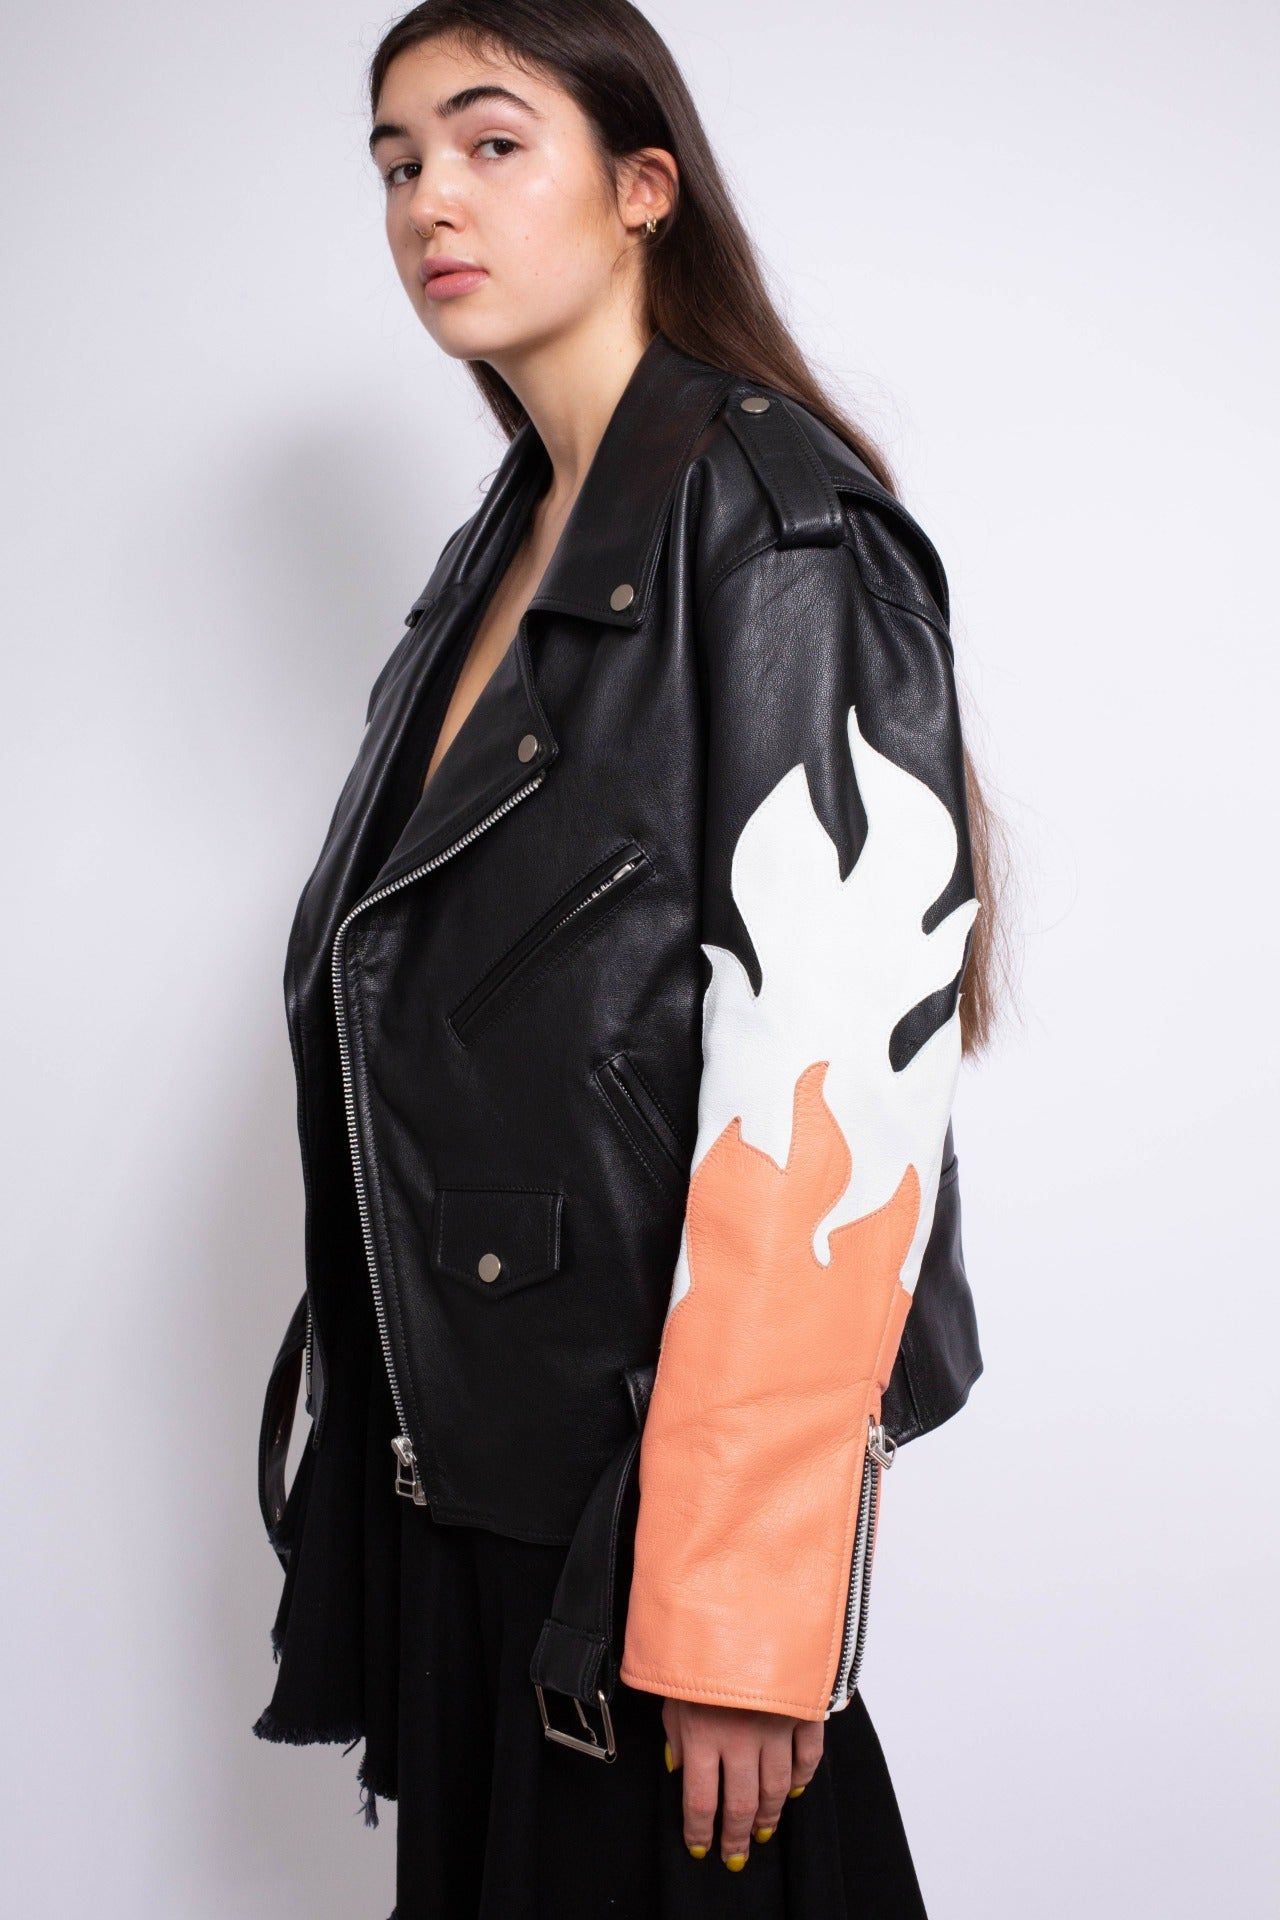 FLAME BIKER JACKET - marques-almeida-dev